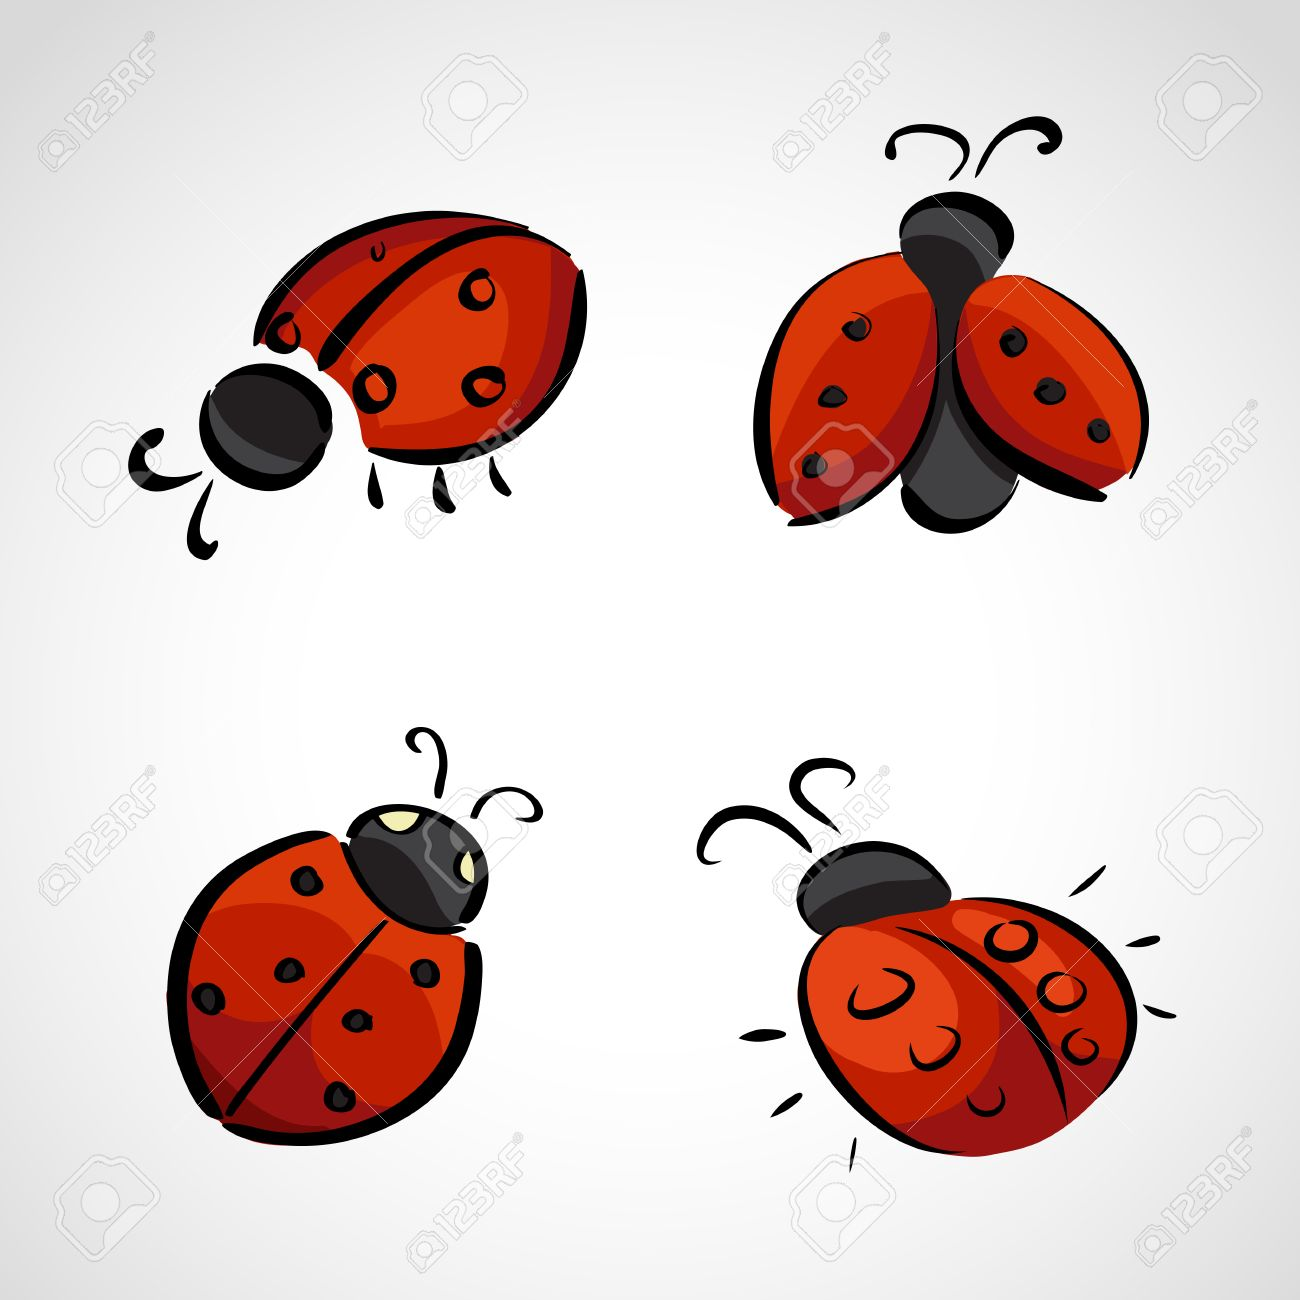 20 208 ladybug stock illustrations cliparts and royalty free